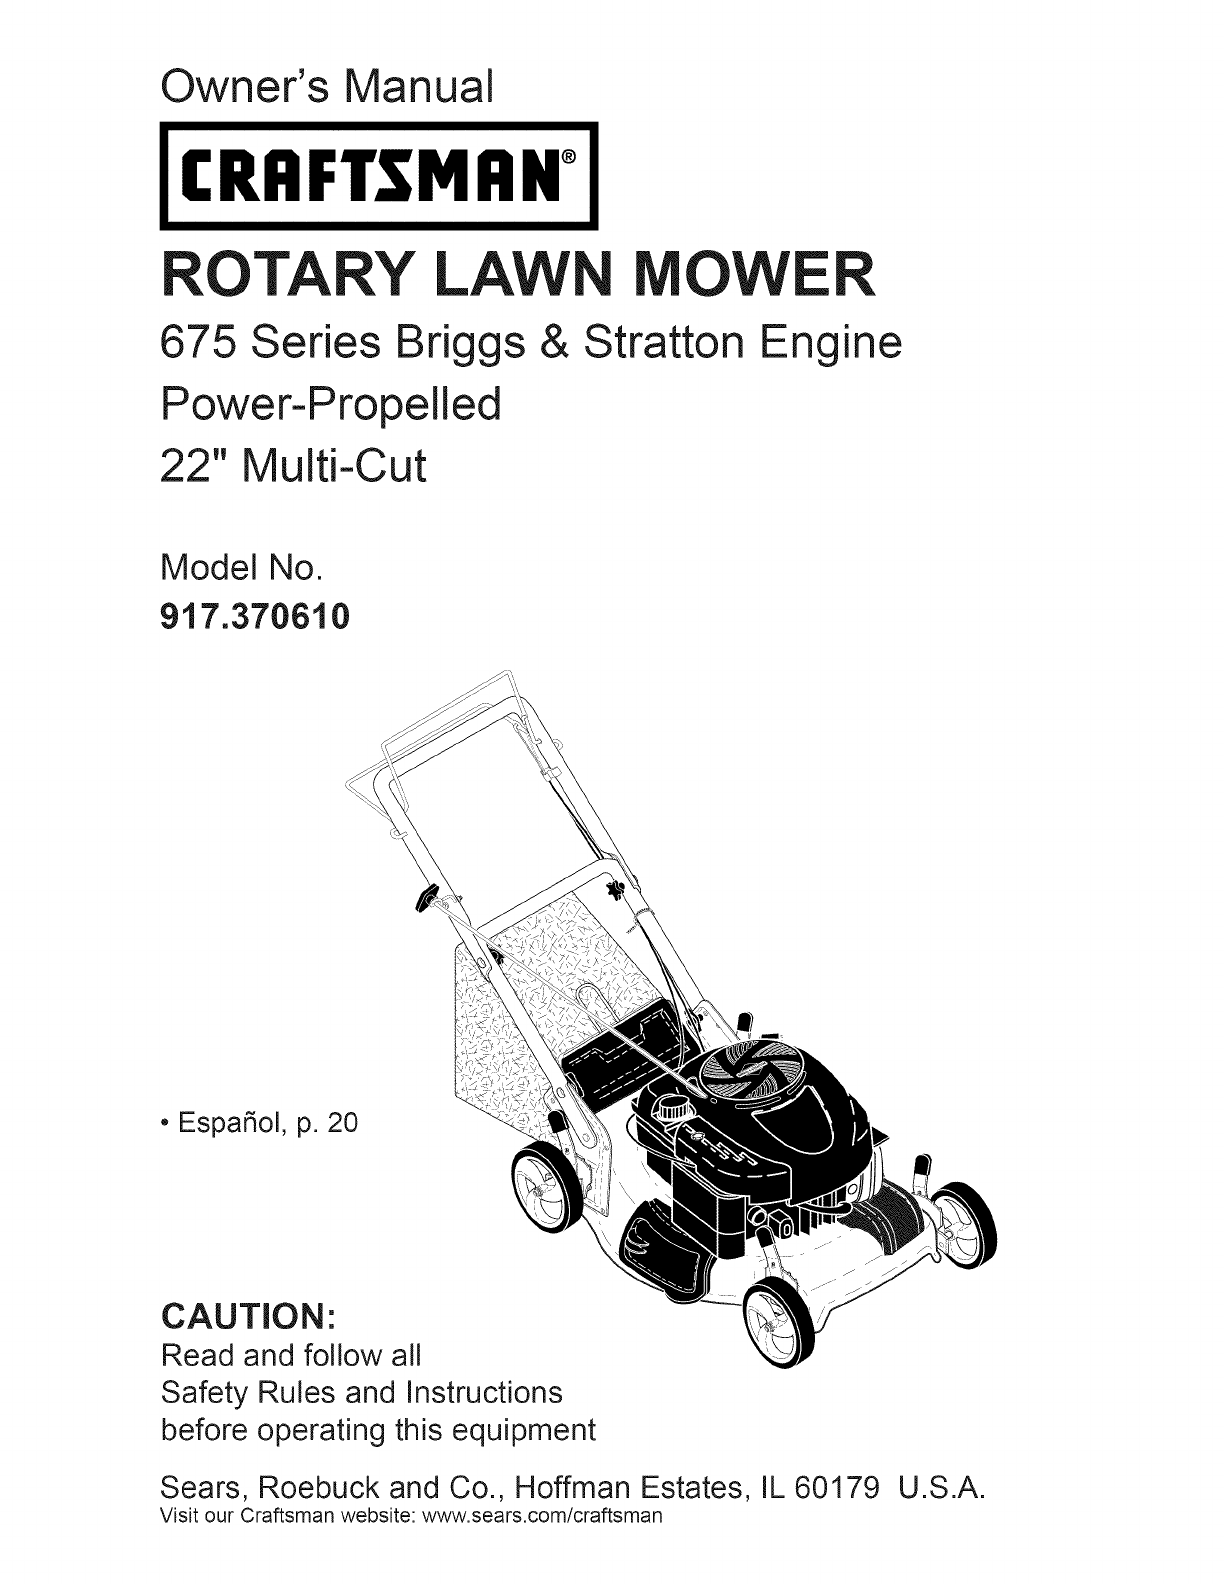 Craftsman lawn mower 37061 user guide manualsonline fandeluxe